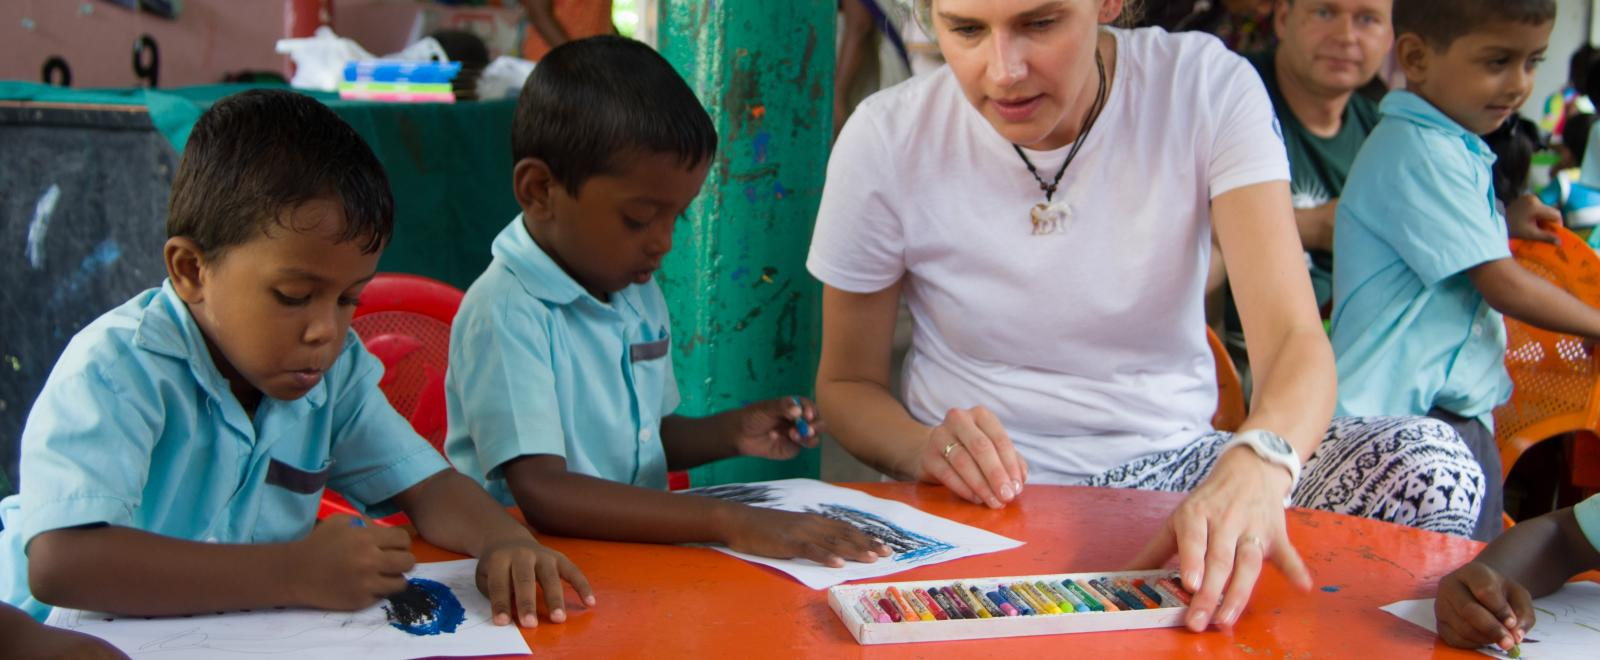 A Polish corporate volunteer works with children in a classroom in Sri Lanka, Asia.